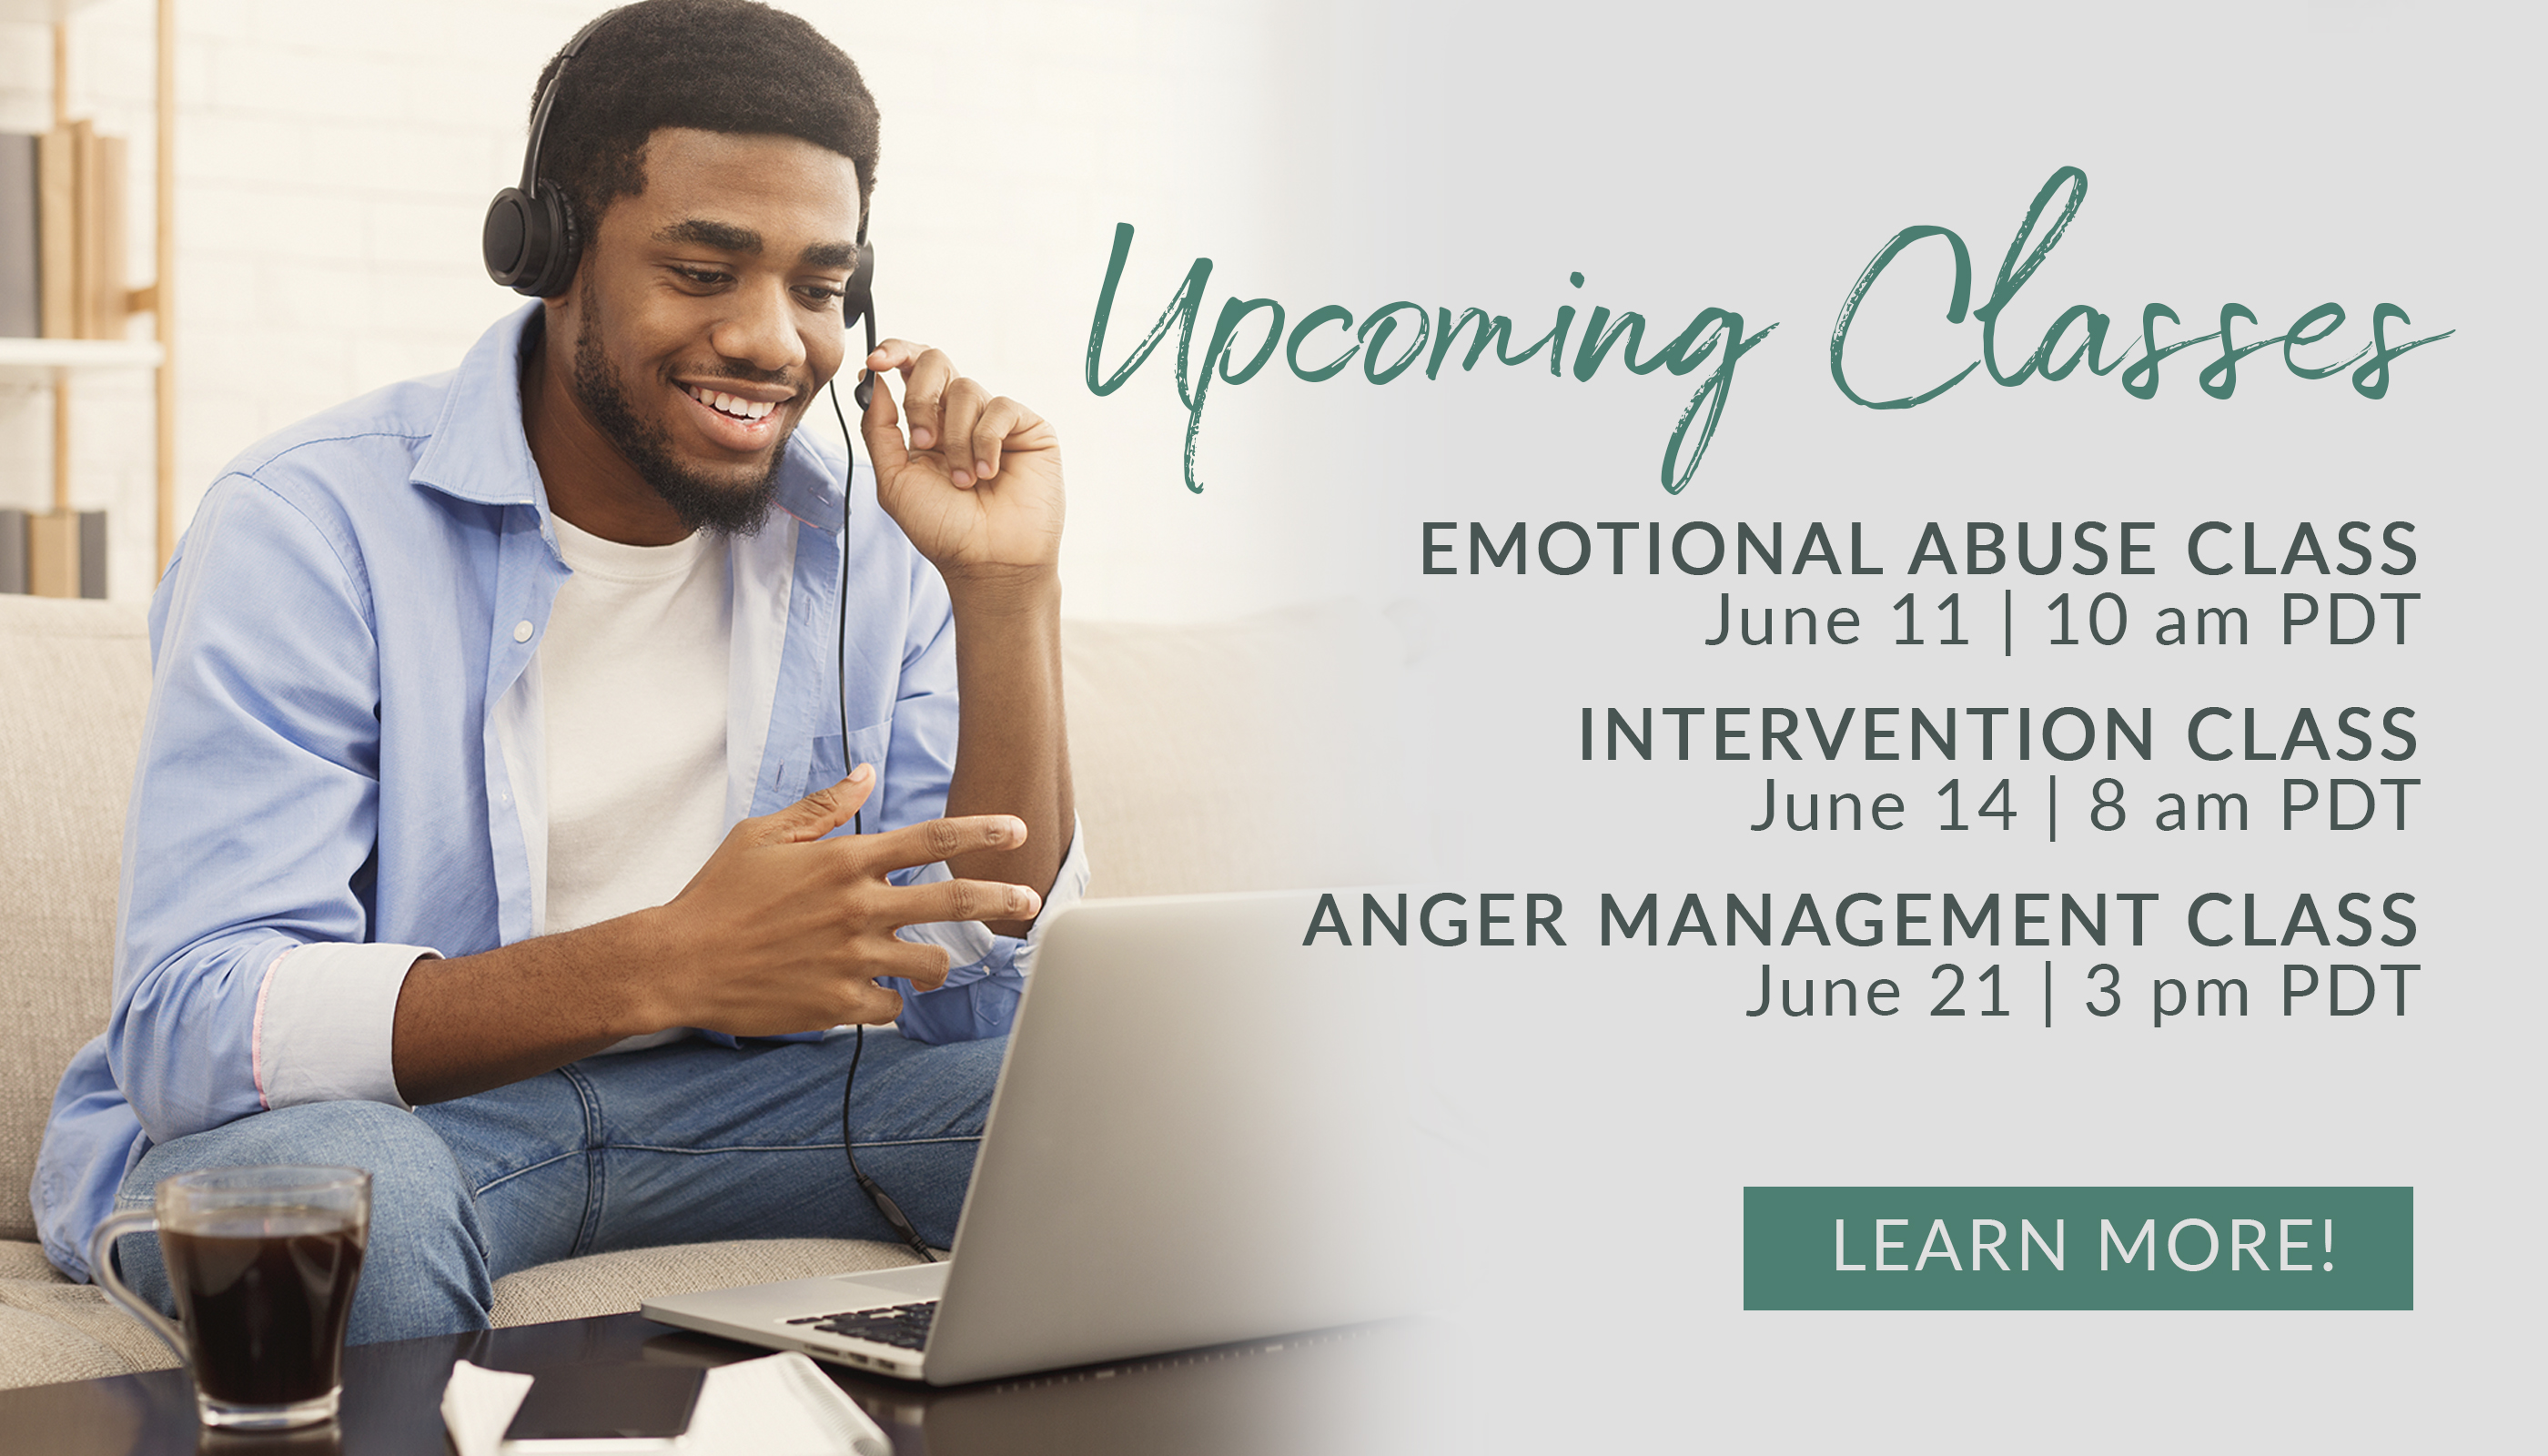 https://marriagerecoverycenter.com/wp-content/uploads/2019/05/Upcoming-Classes-Graphic-June-2019.jpg